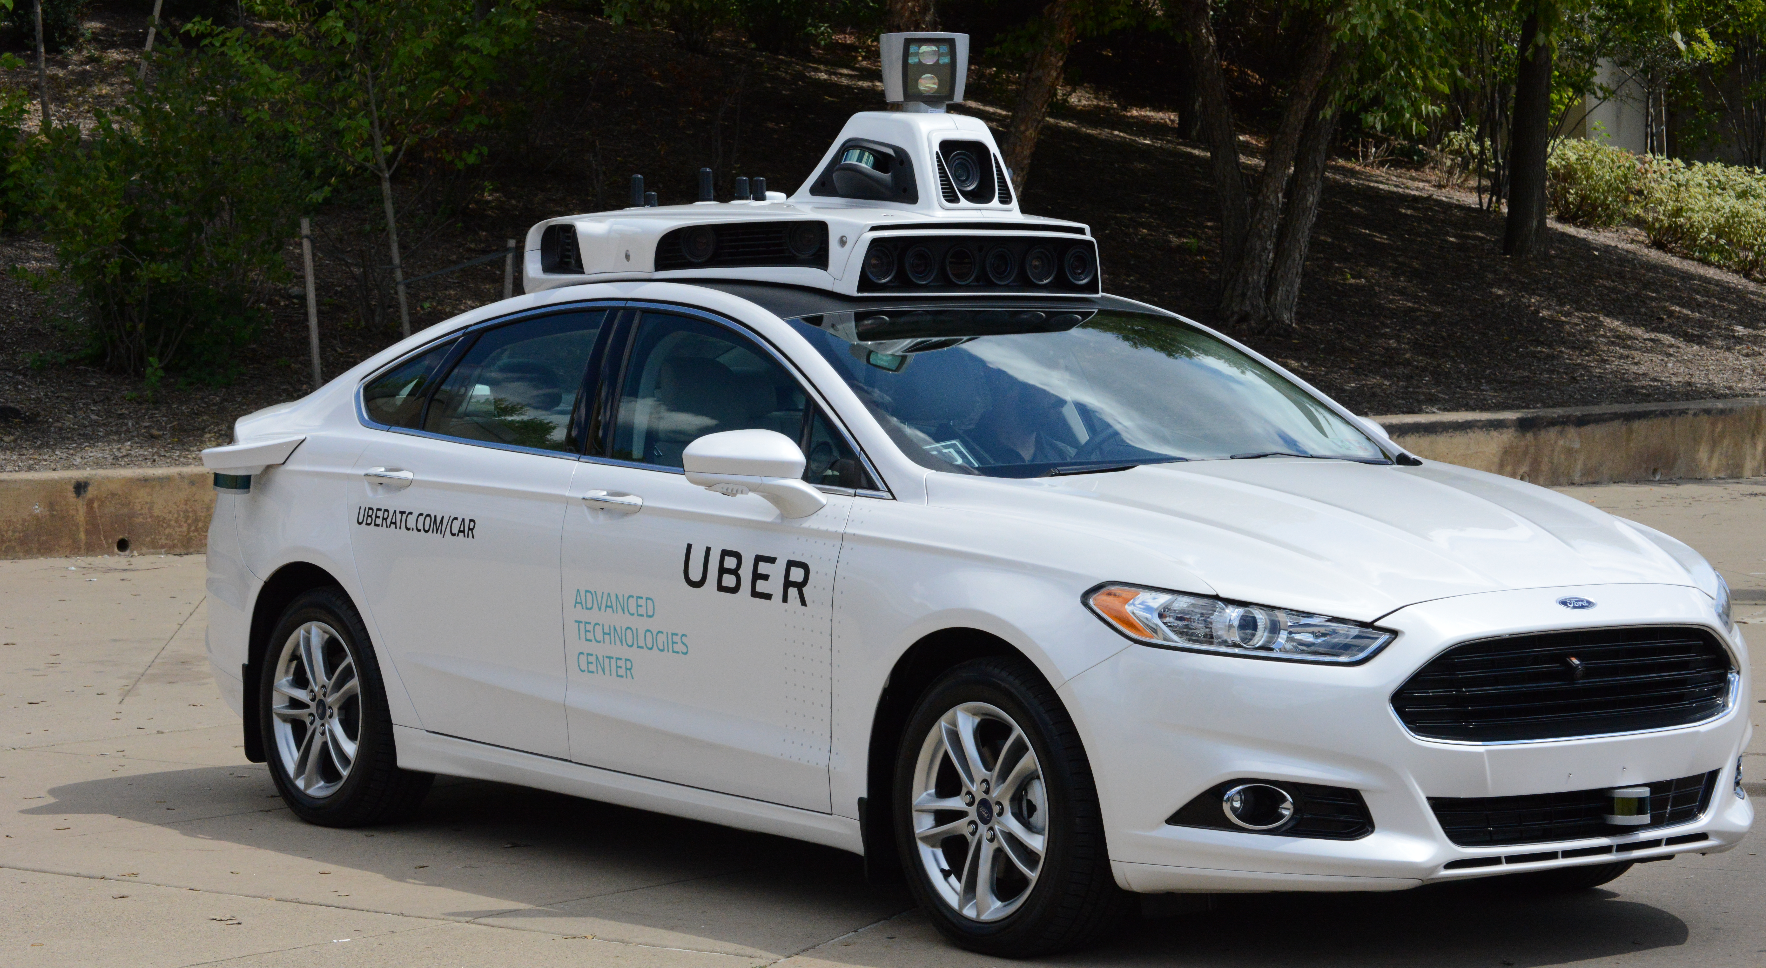 Uber Advanced Technologies Group Car